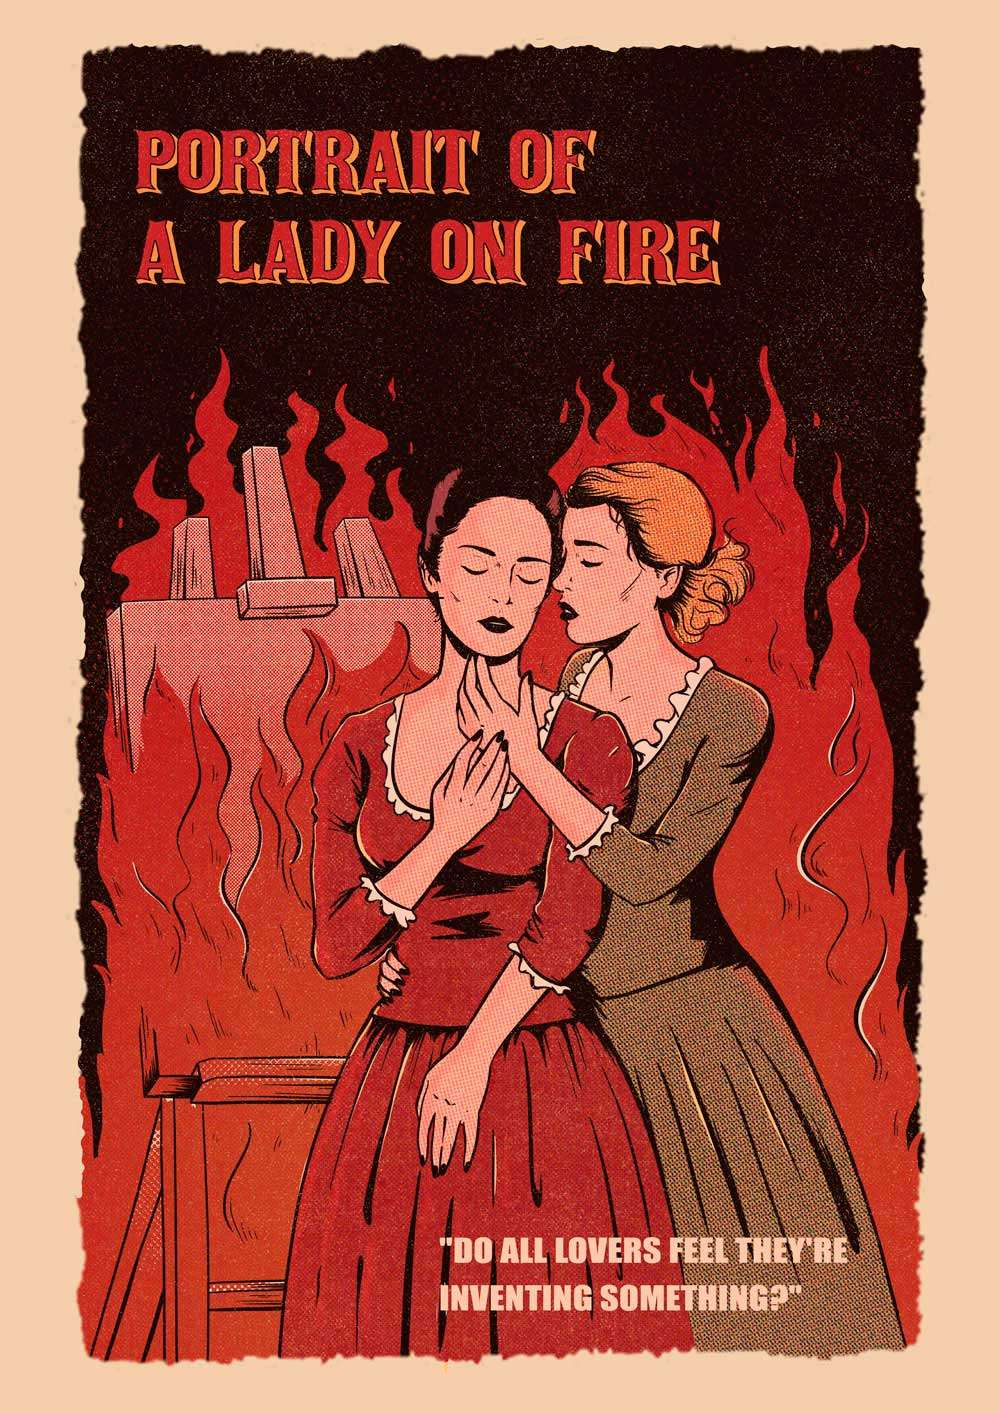 A piece of art showing the characters of Portrait of a Lady On Fire